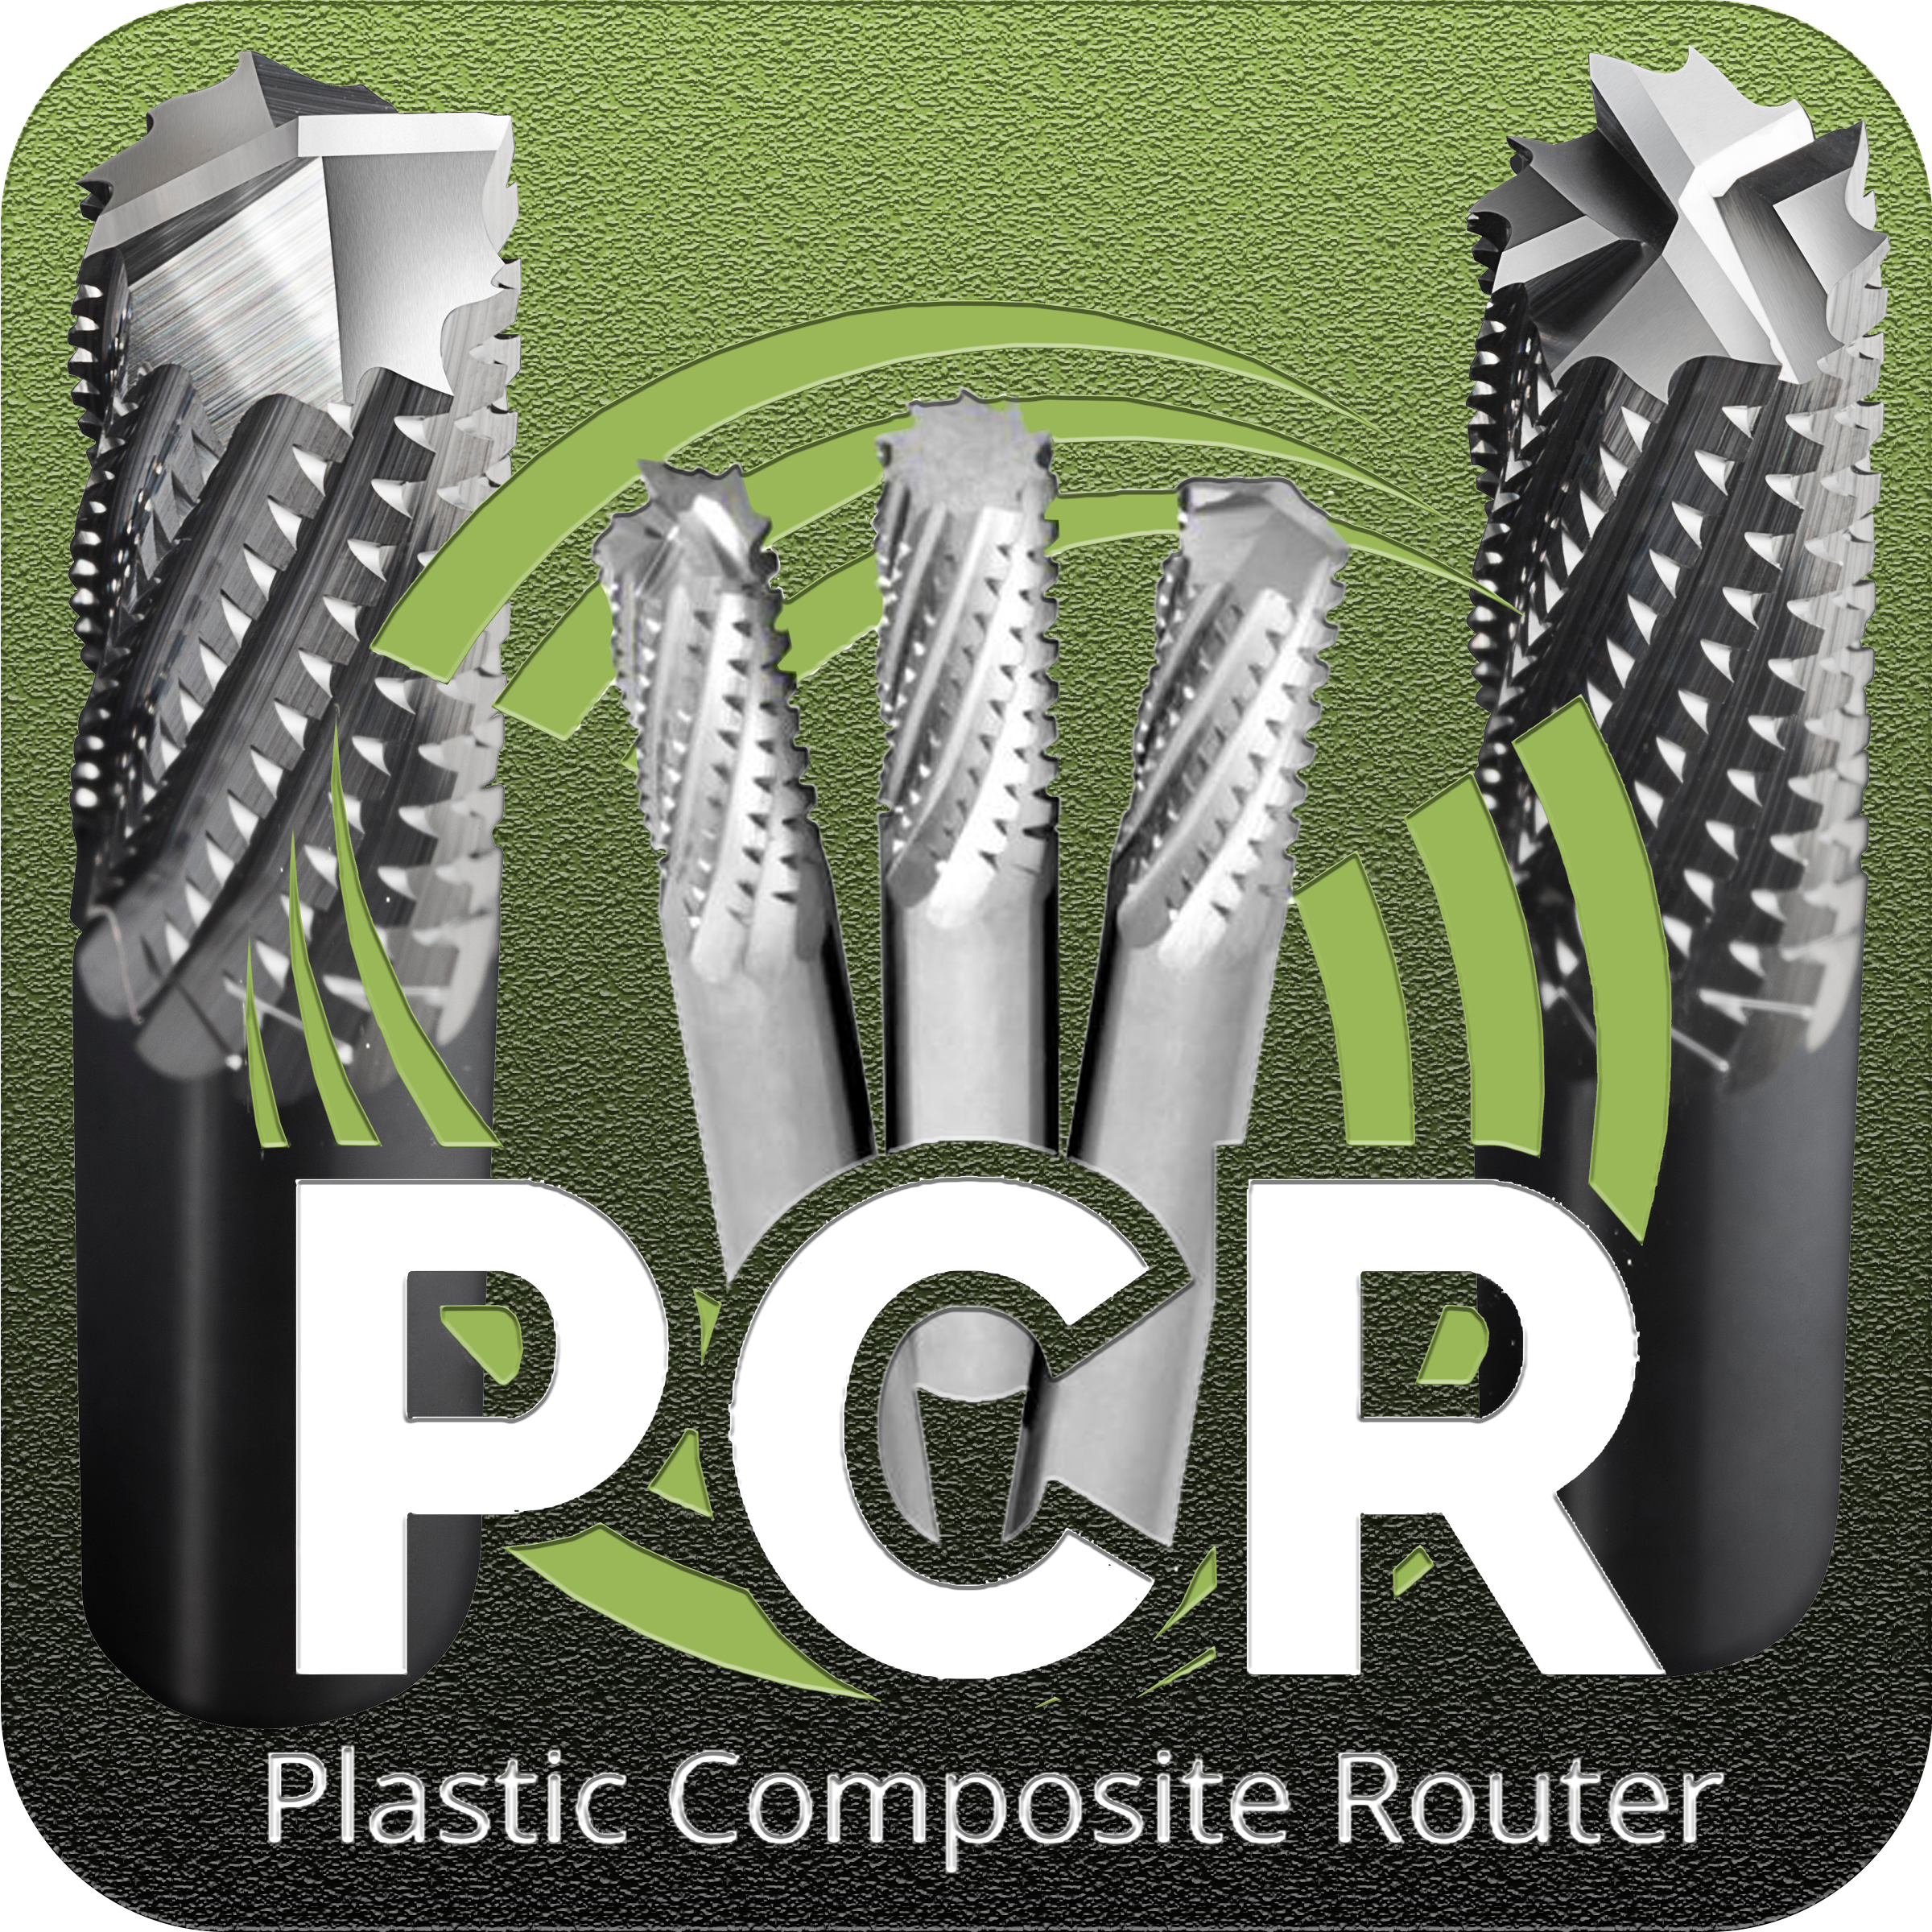 Plastic Composite Router (PCR) | Series 29 & 29M